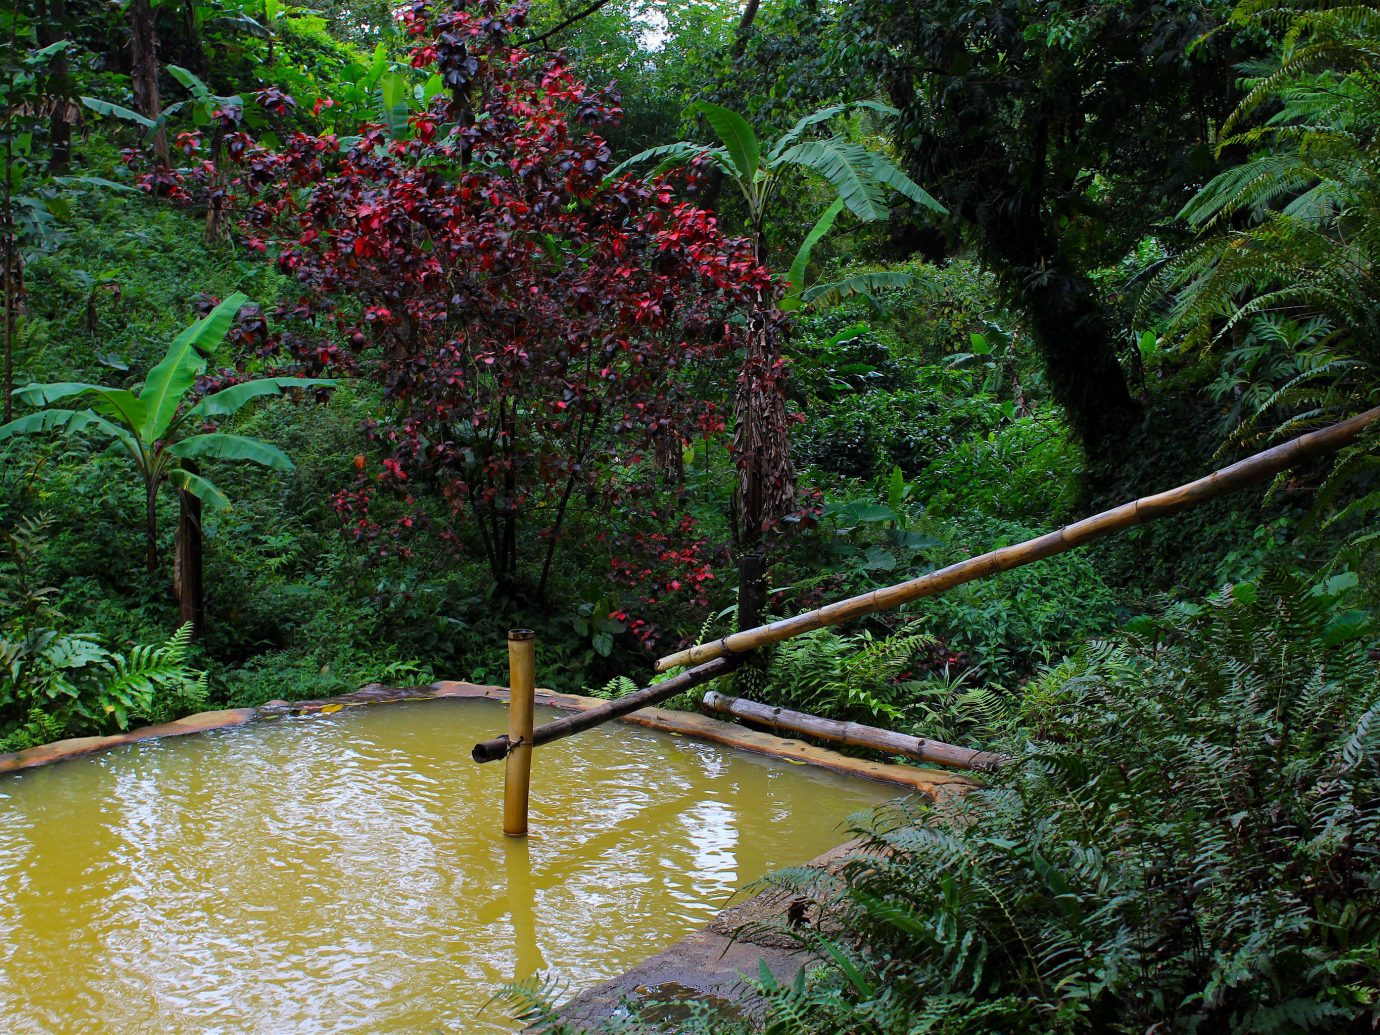 Trip Ideas tree outdoor water habitat River Nature geographical feature natural environment wilderness bayou rainforest ecosystem Forest Jungle stream old growth forest woodland leaf Lake wetland waterway autumn bridge flower pond surrounded wooded